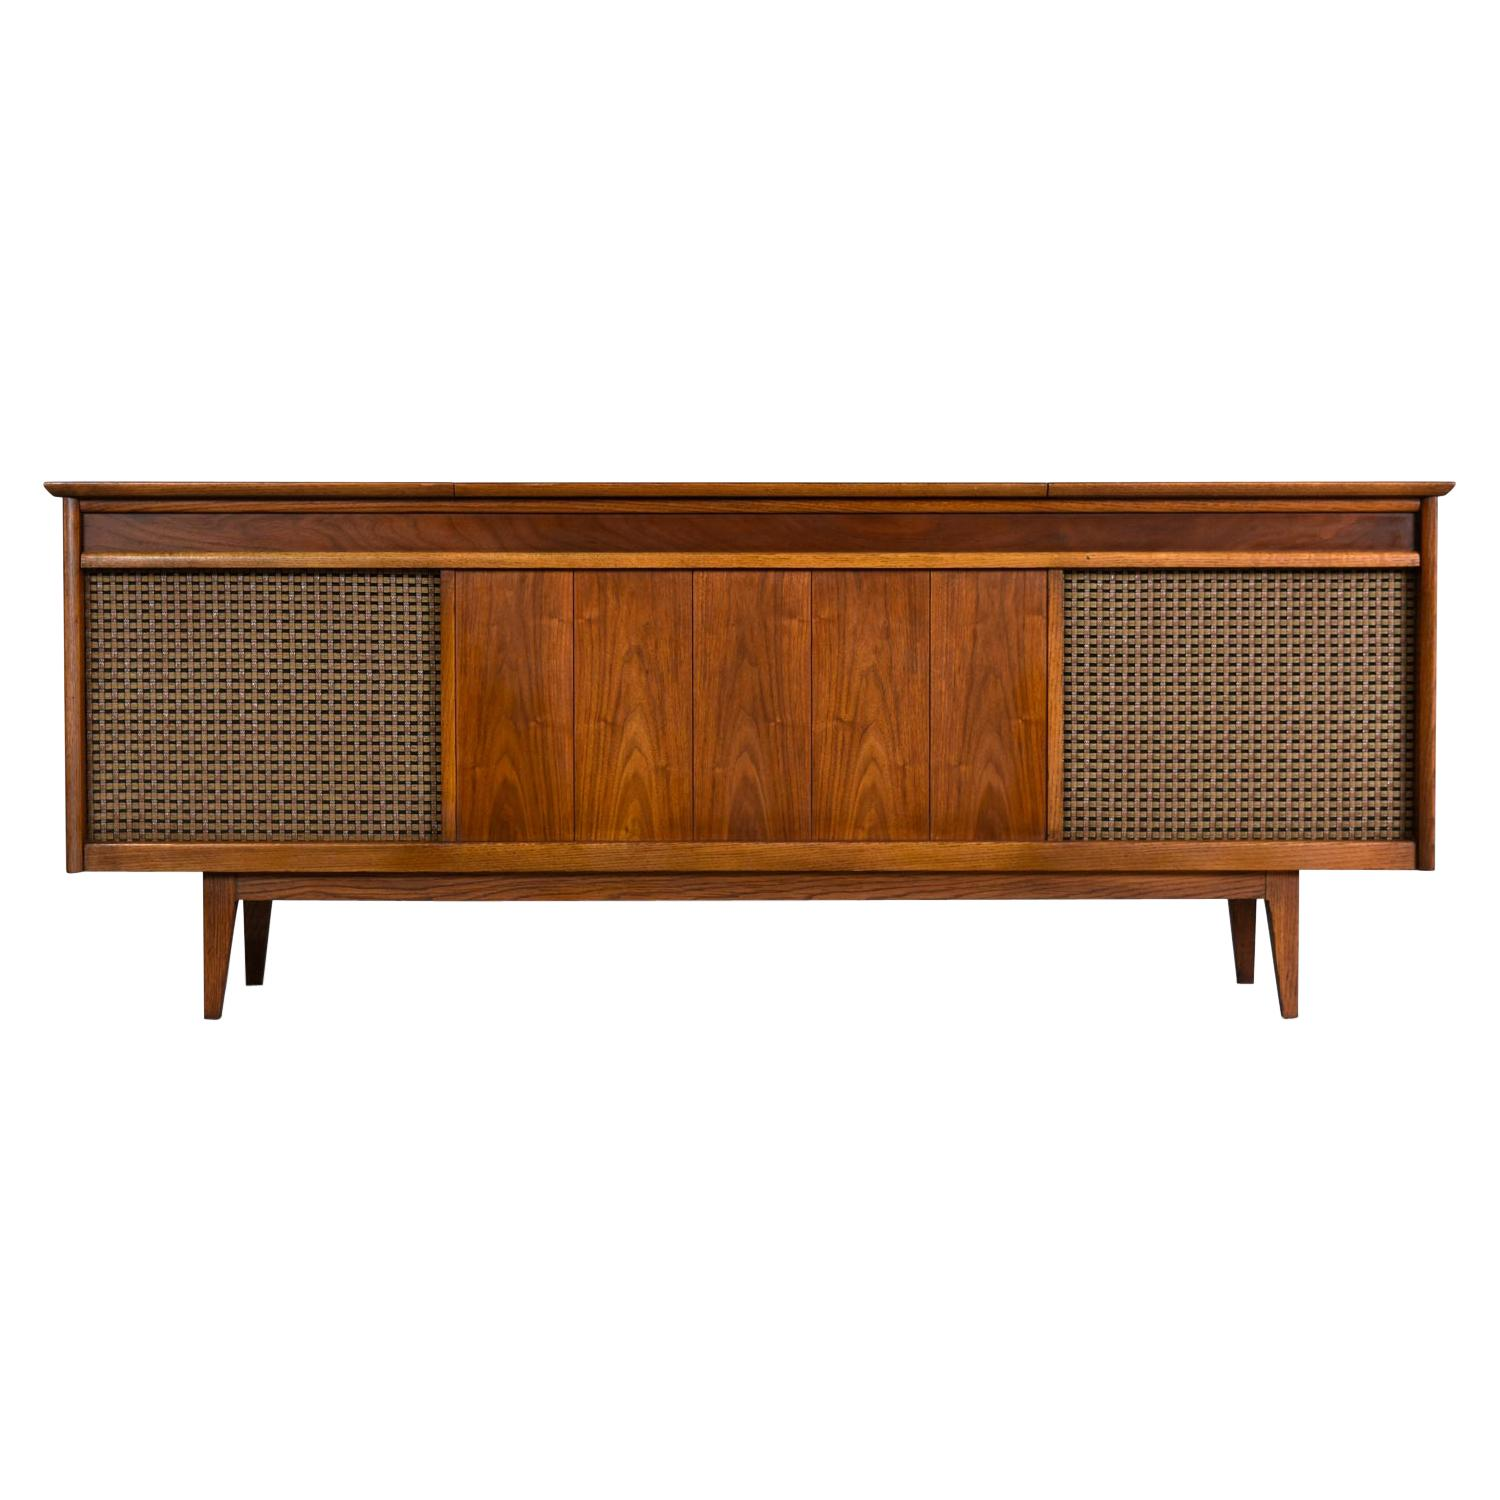 Danish Walnut Credenza Style Console Stereo Cabinet with Original Speakers